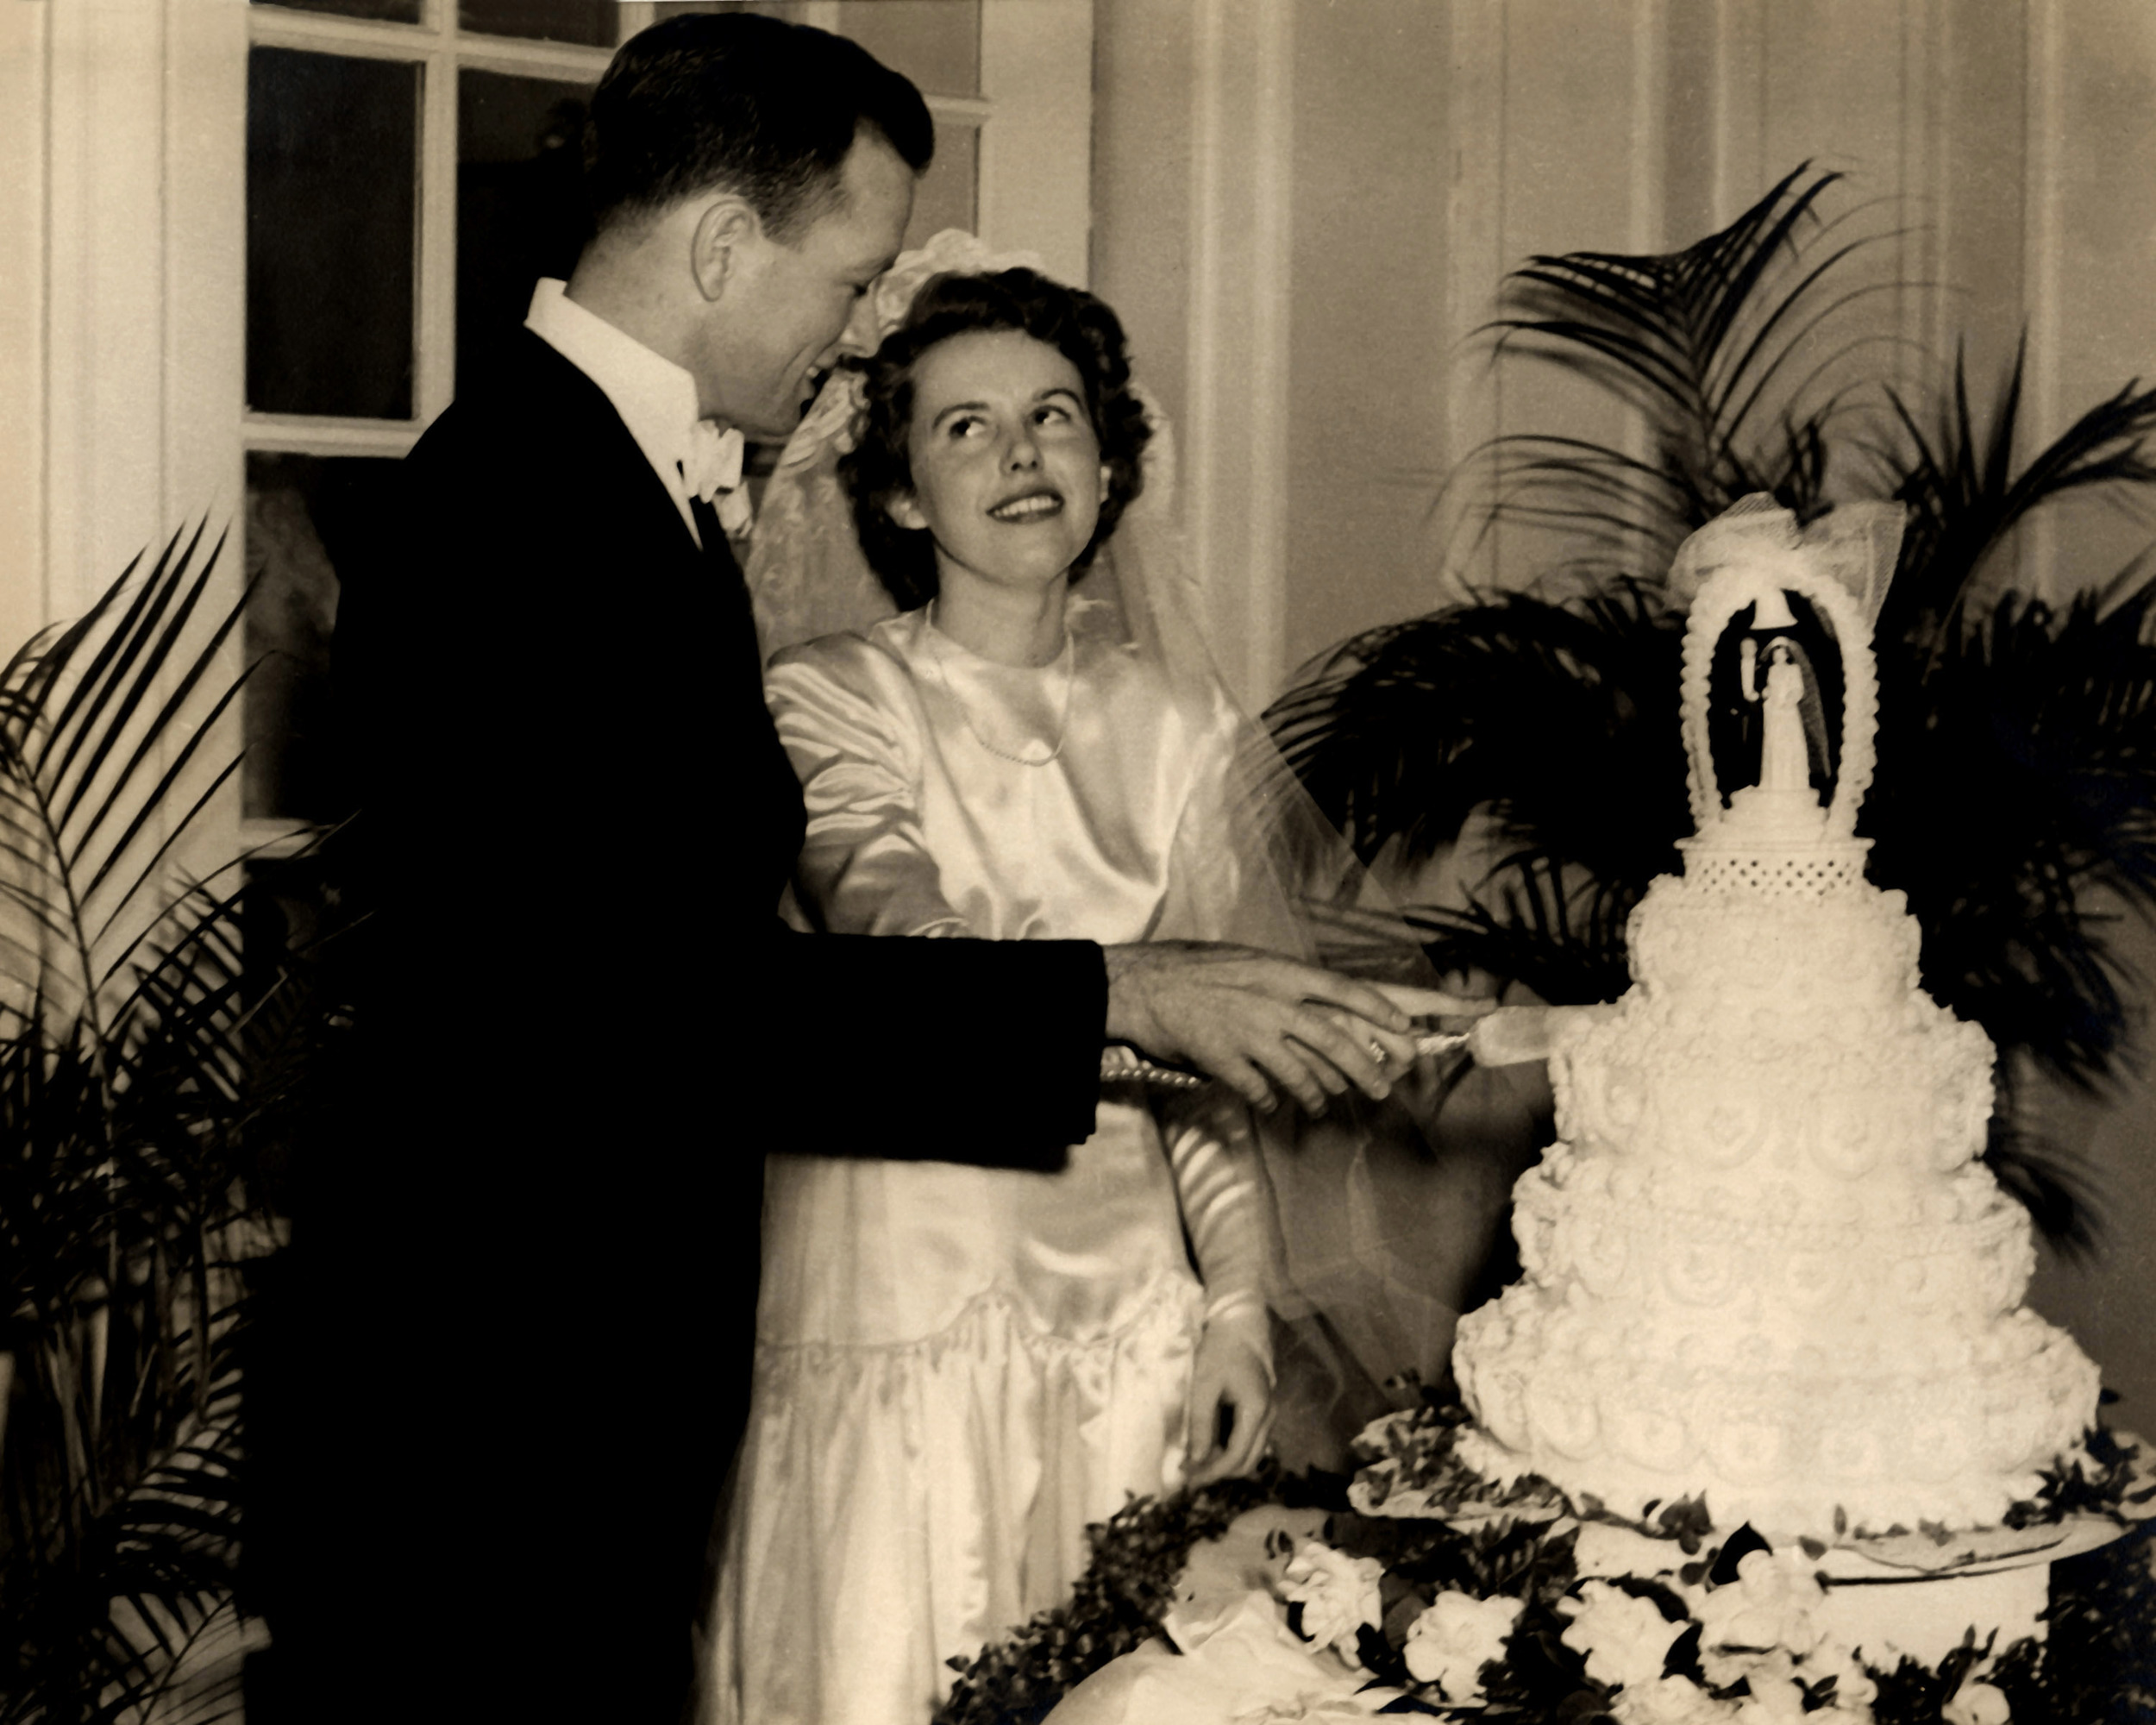 With wife Loise at their wedding reception, January 15, 1949, at the Francis Scott Key hotel in Frederick, Maryland.